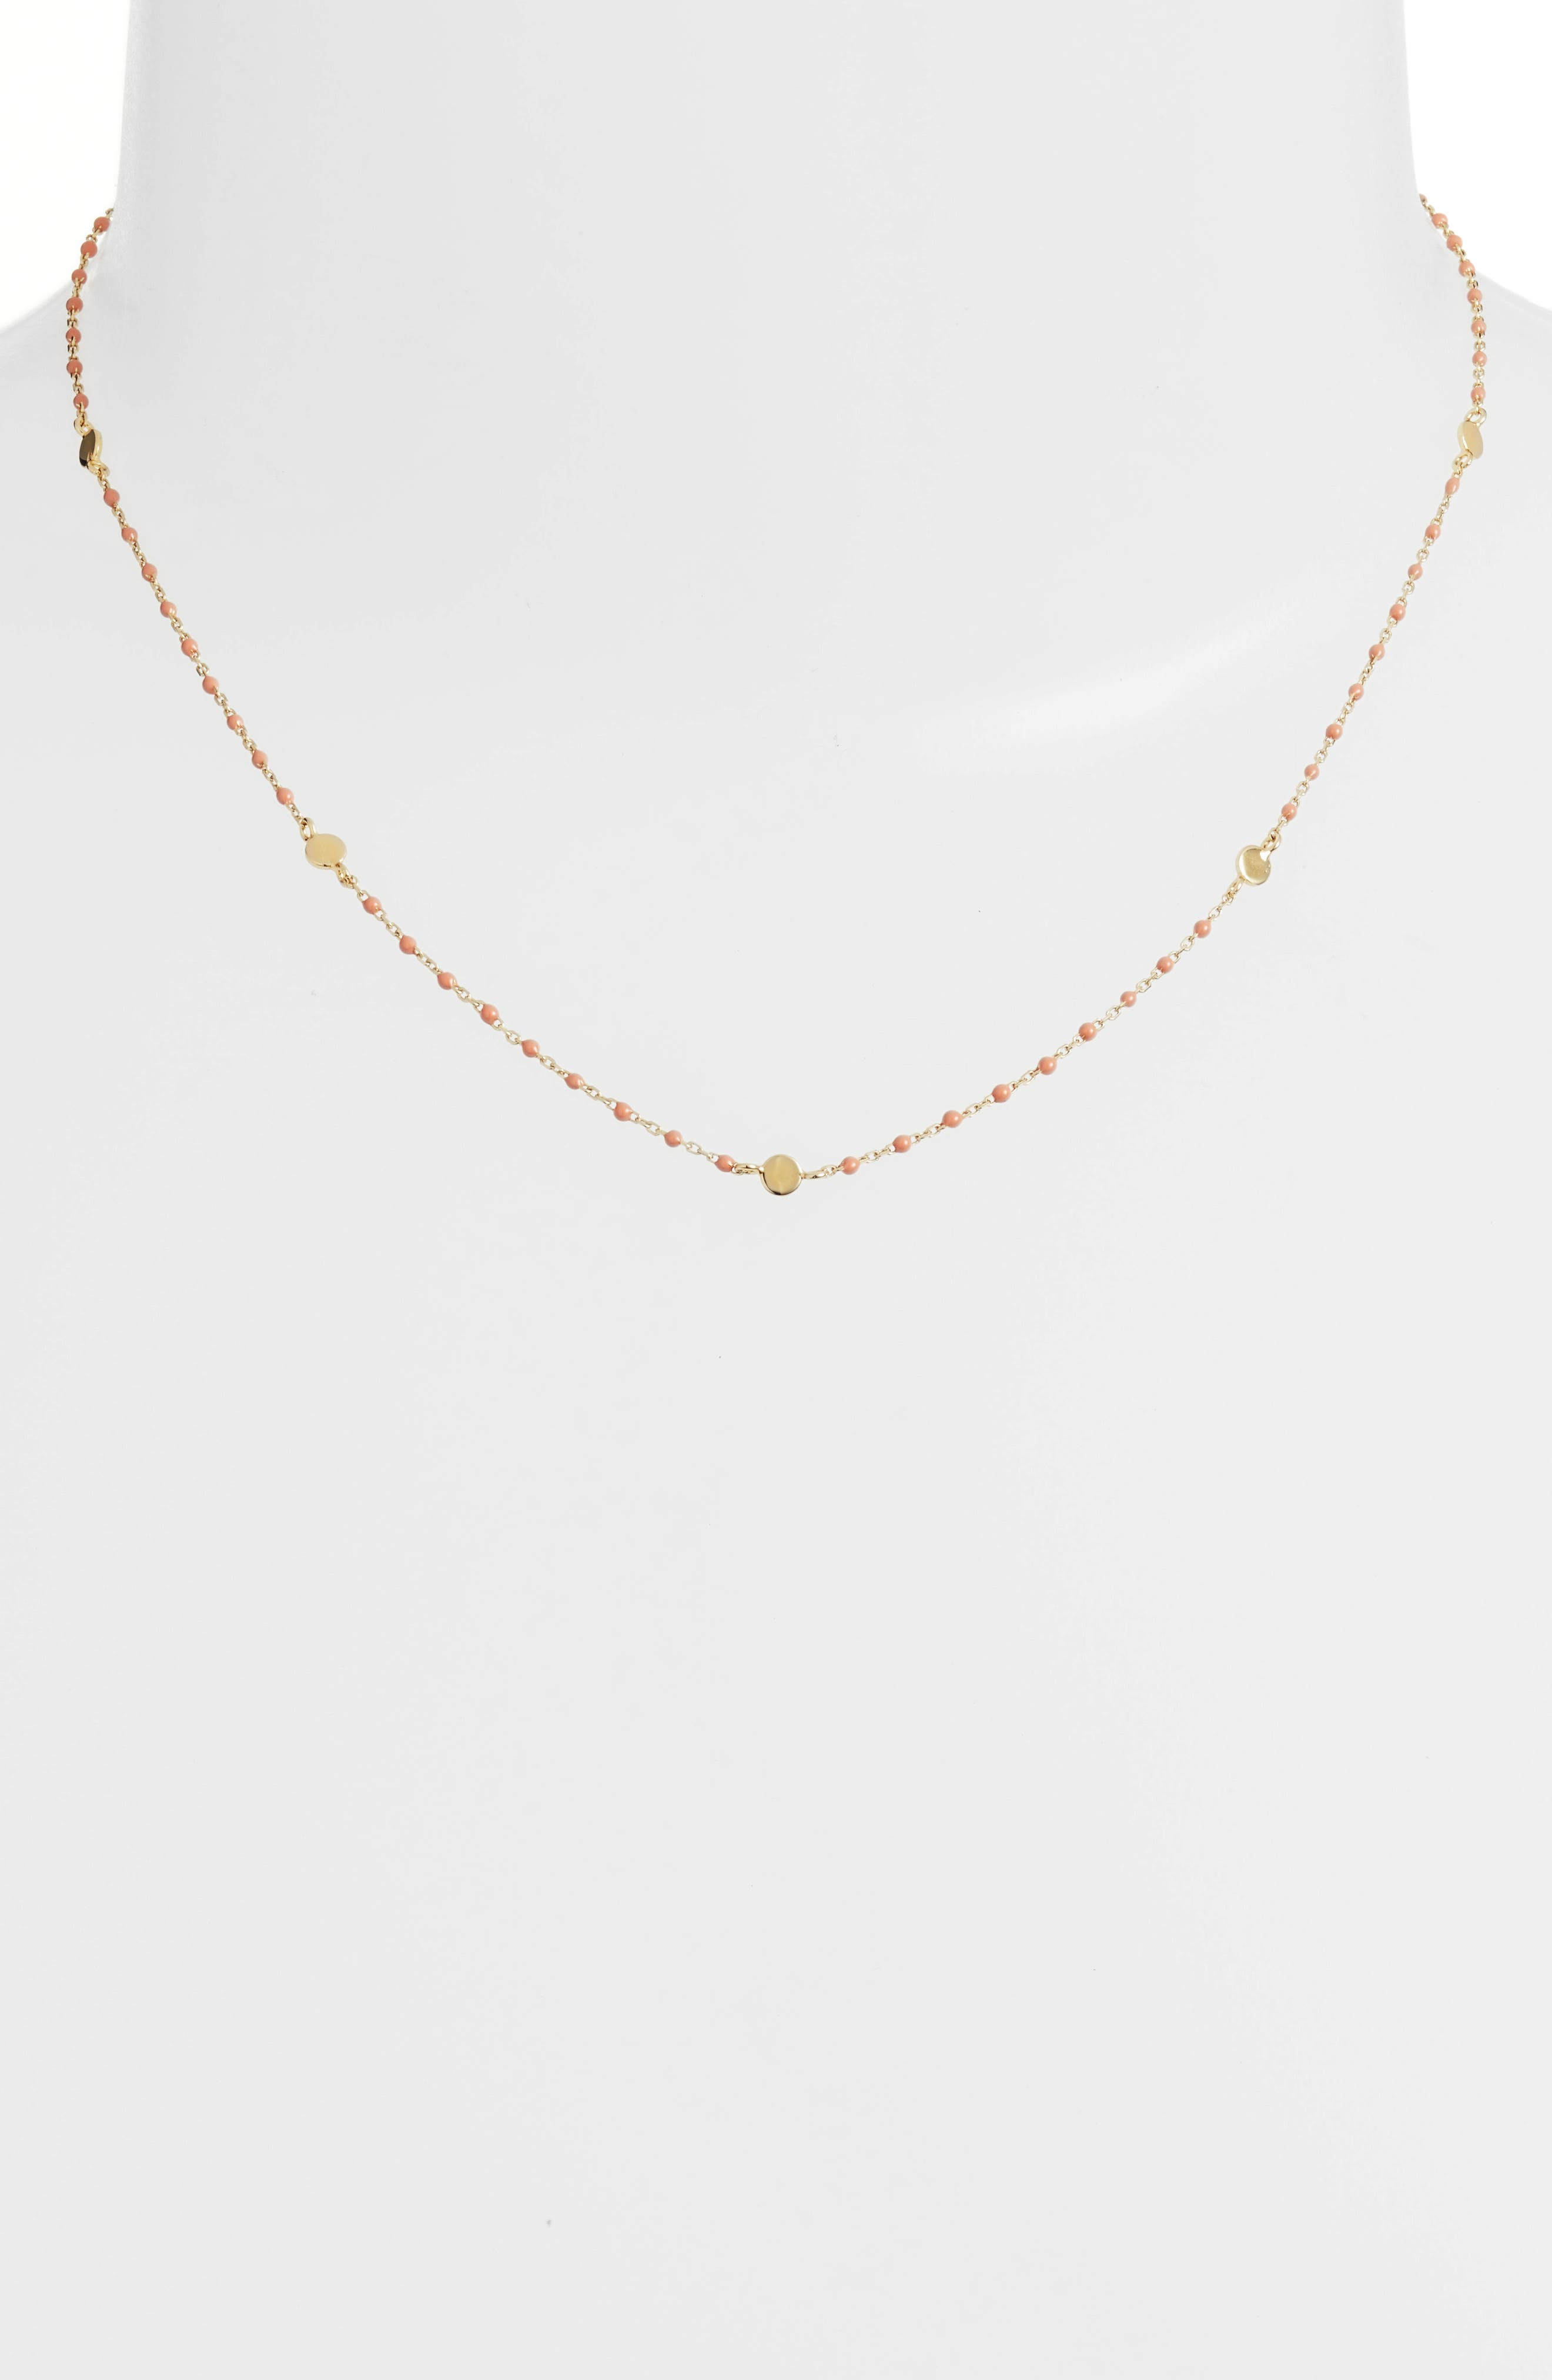 Beaded Station Necklace,                         Main,                         color, Gold/ Coral